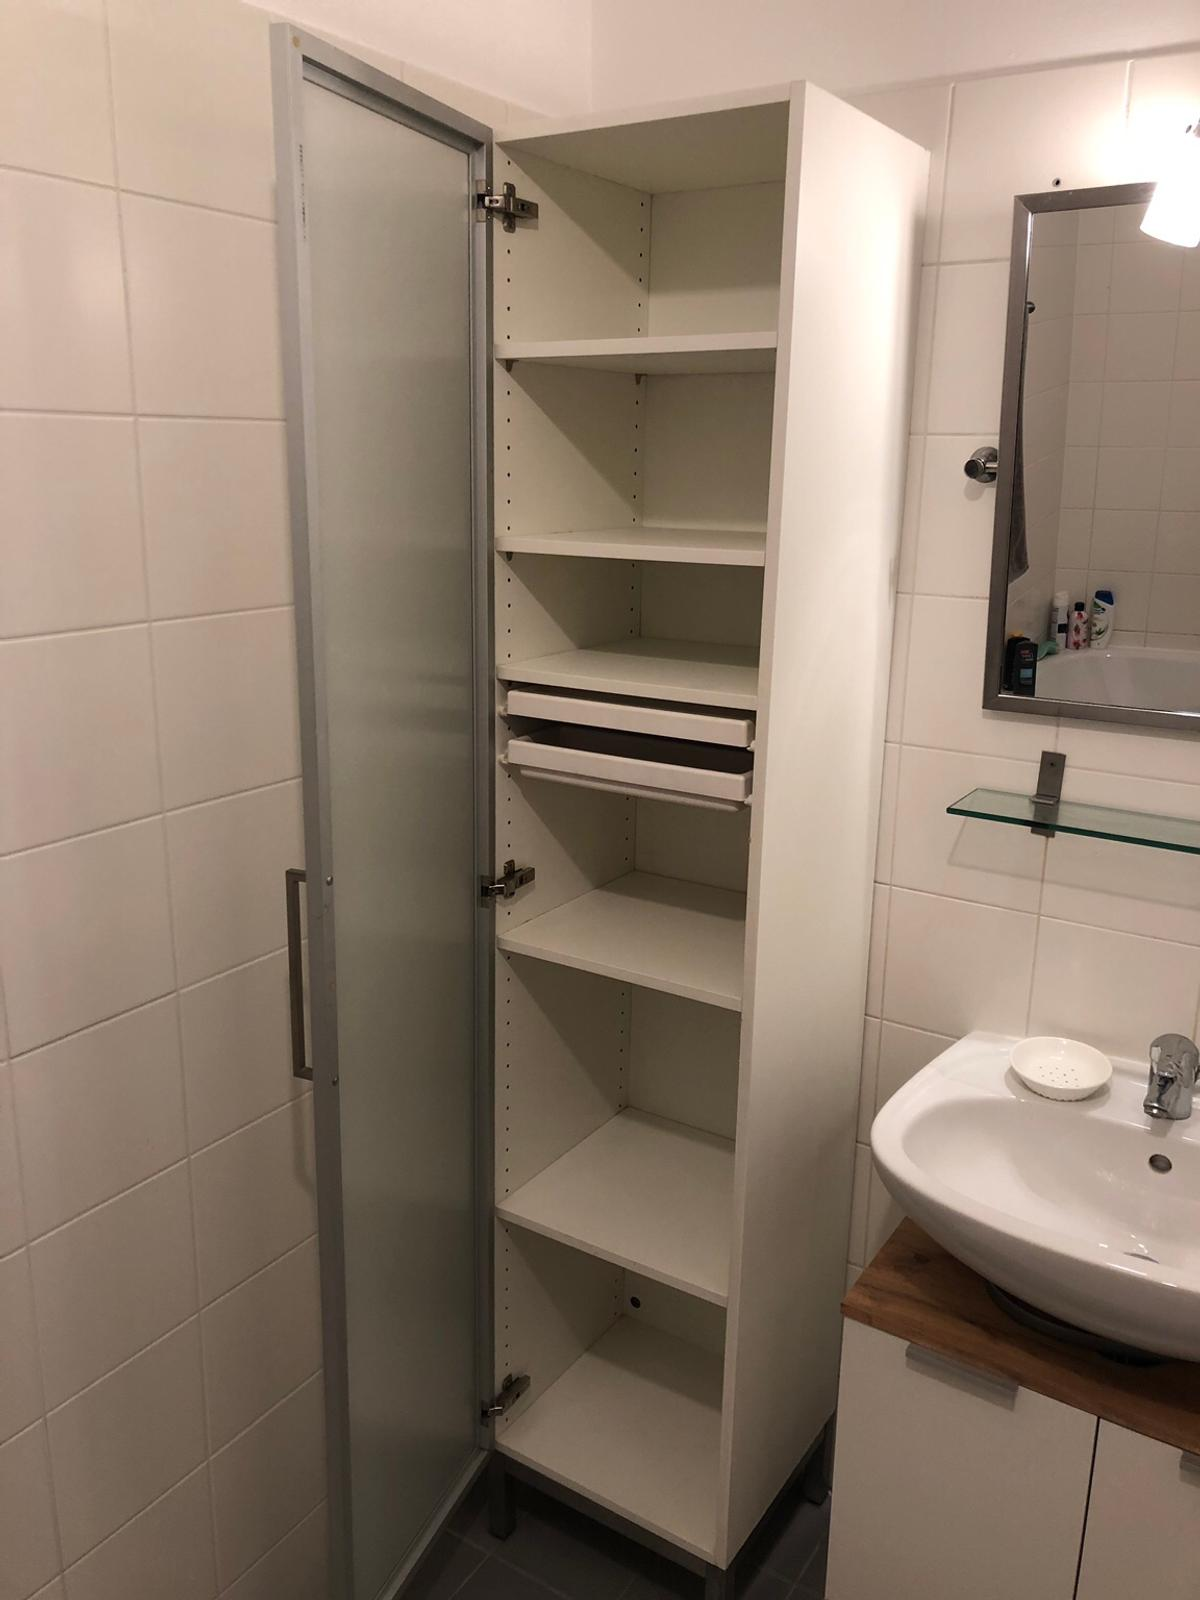 Badezimmerschrank In 8010 Graz For Free For Sale Shpock